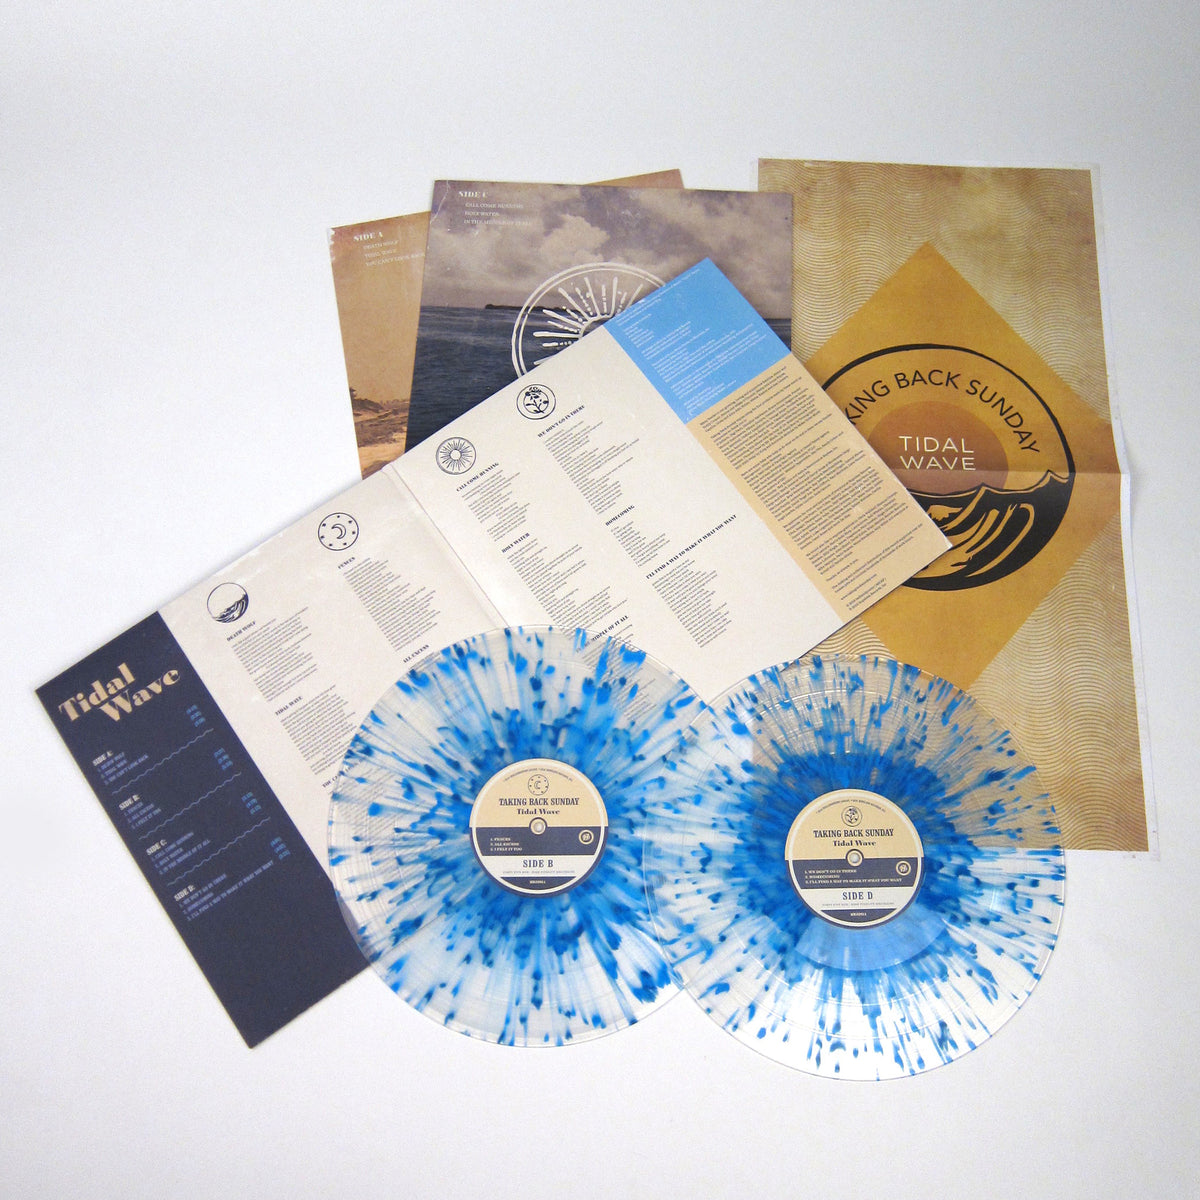 Taking Back Sunday: Tidal Wave (Colored Vinyl) Vinyl 2LP